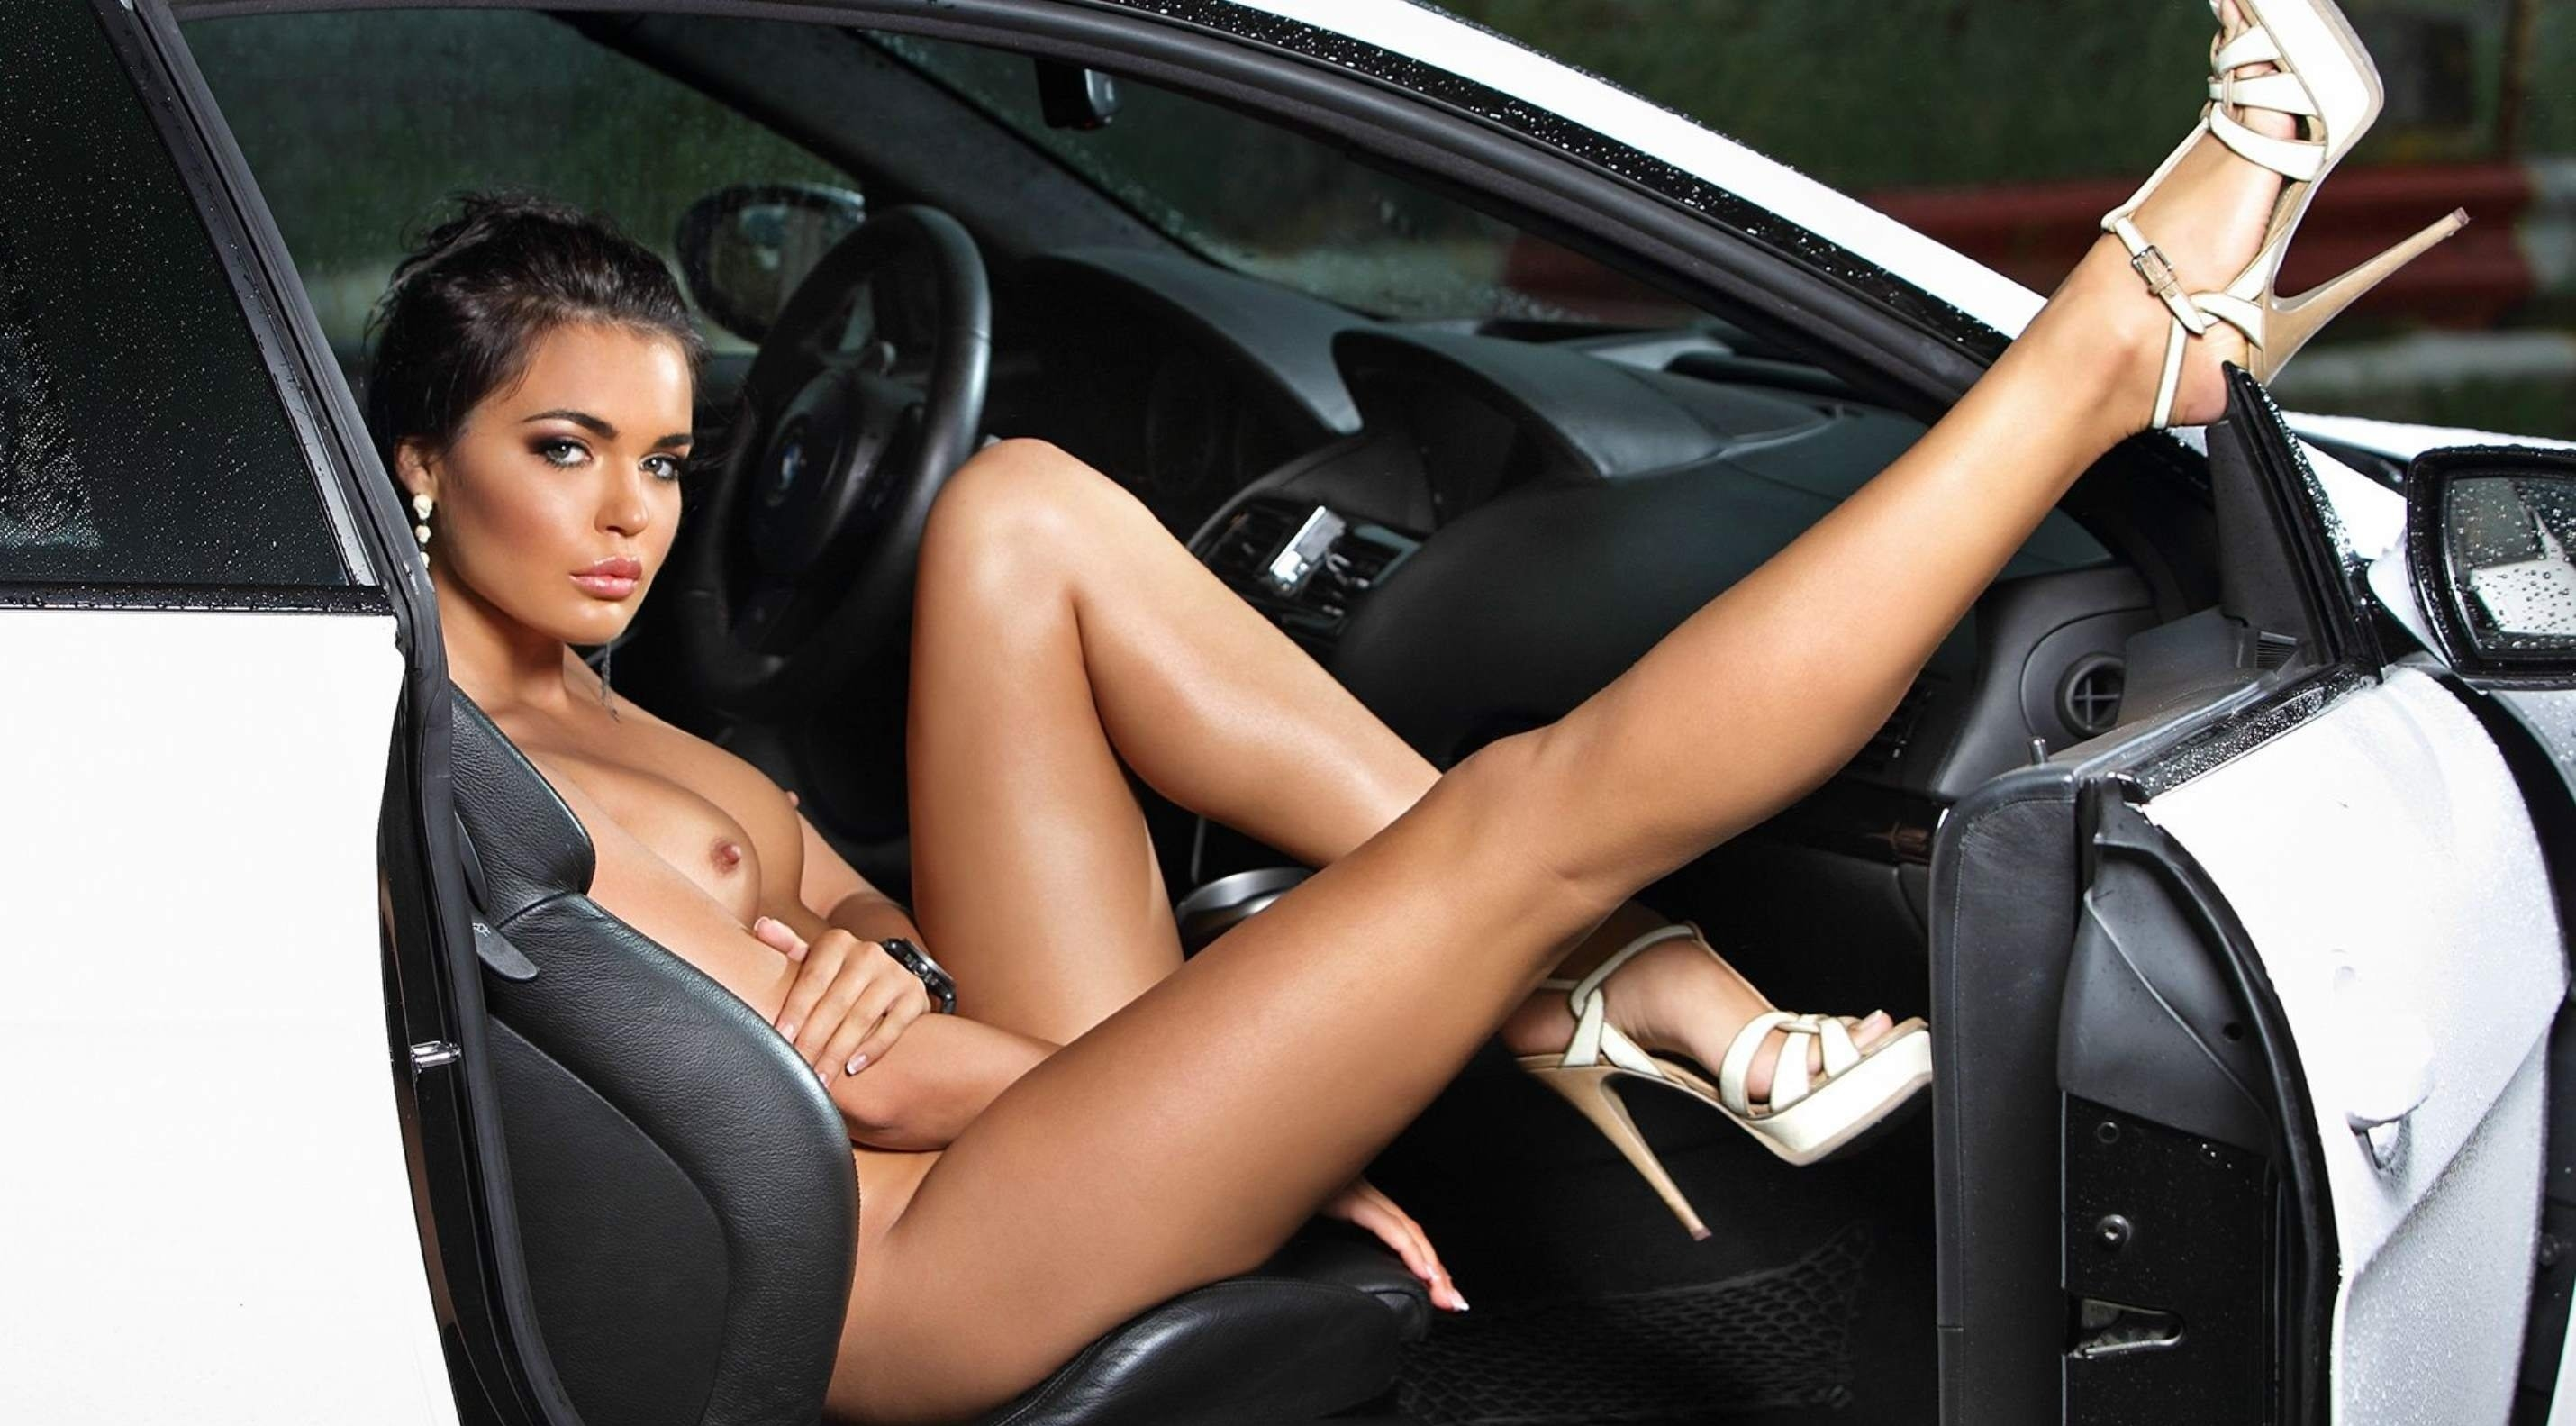 Women petite body car naked butt